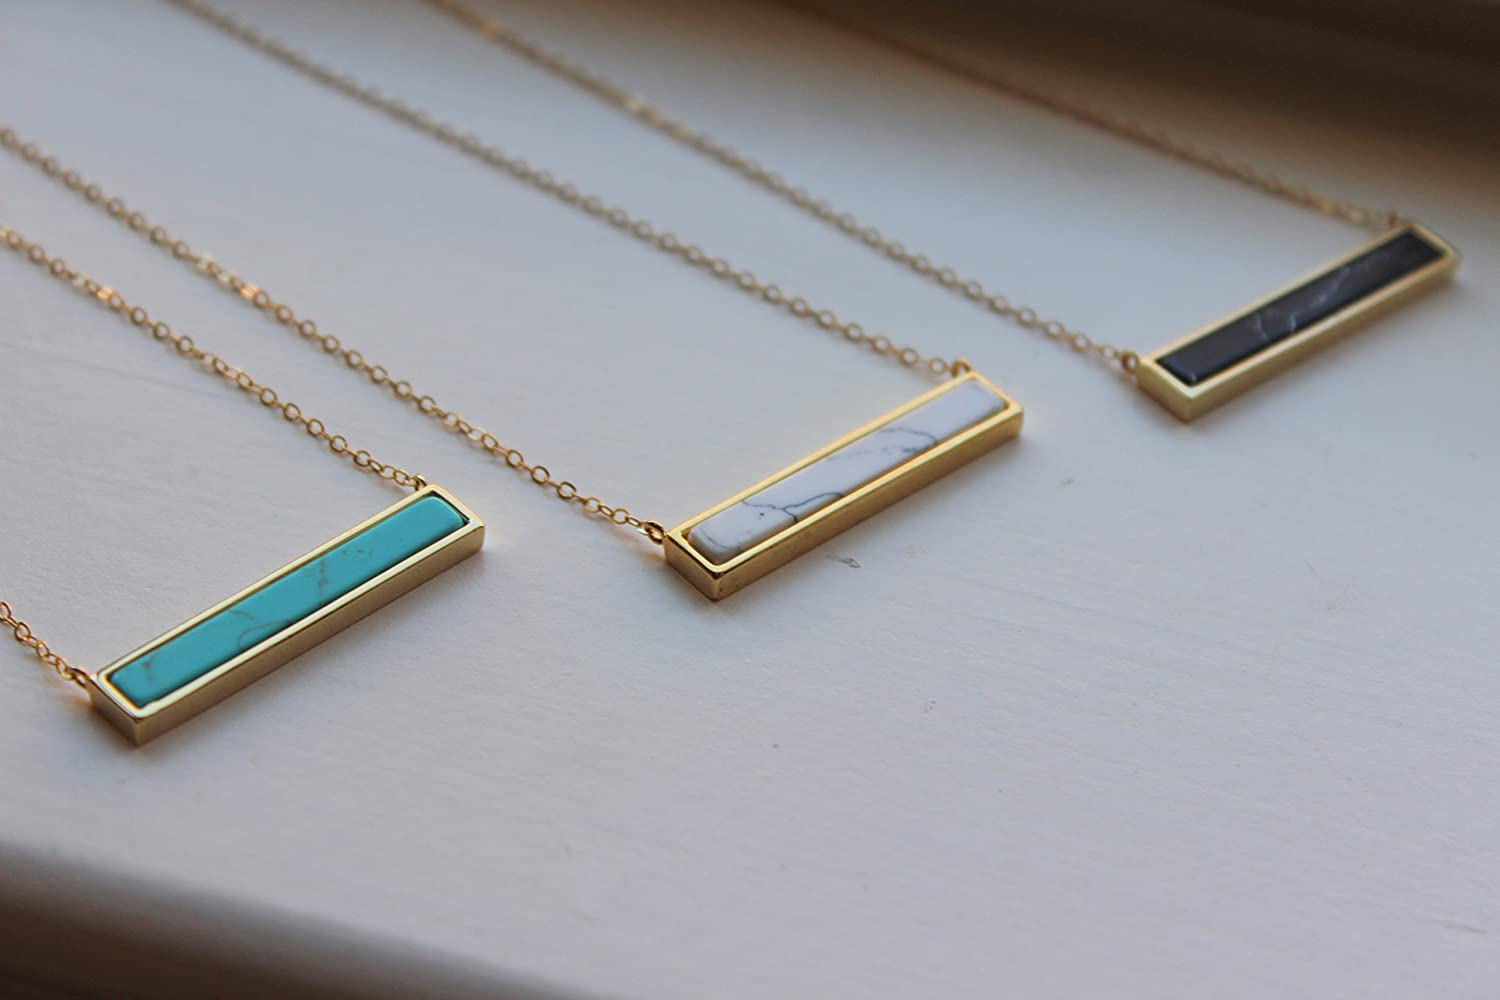 595a49cccc22d Gold Bar Necklace, Bar Jewelry, Marble Necklace, Marble Jewelry, White  Howlite, Turquoise, Black Howlite, 14k Gold Filled Chain, Christmas Gift,  Stone ...